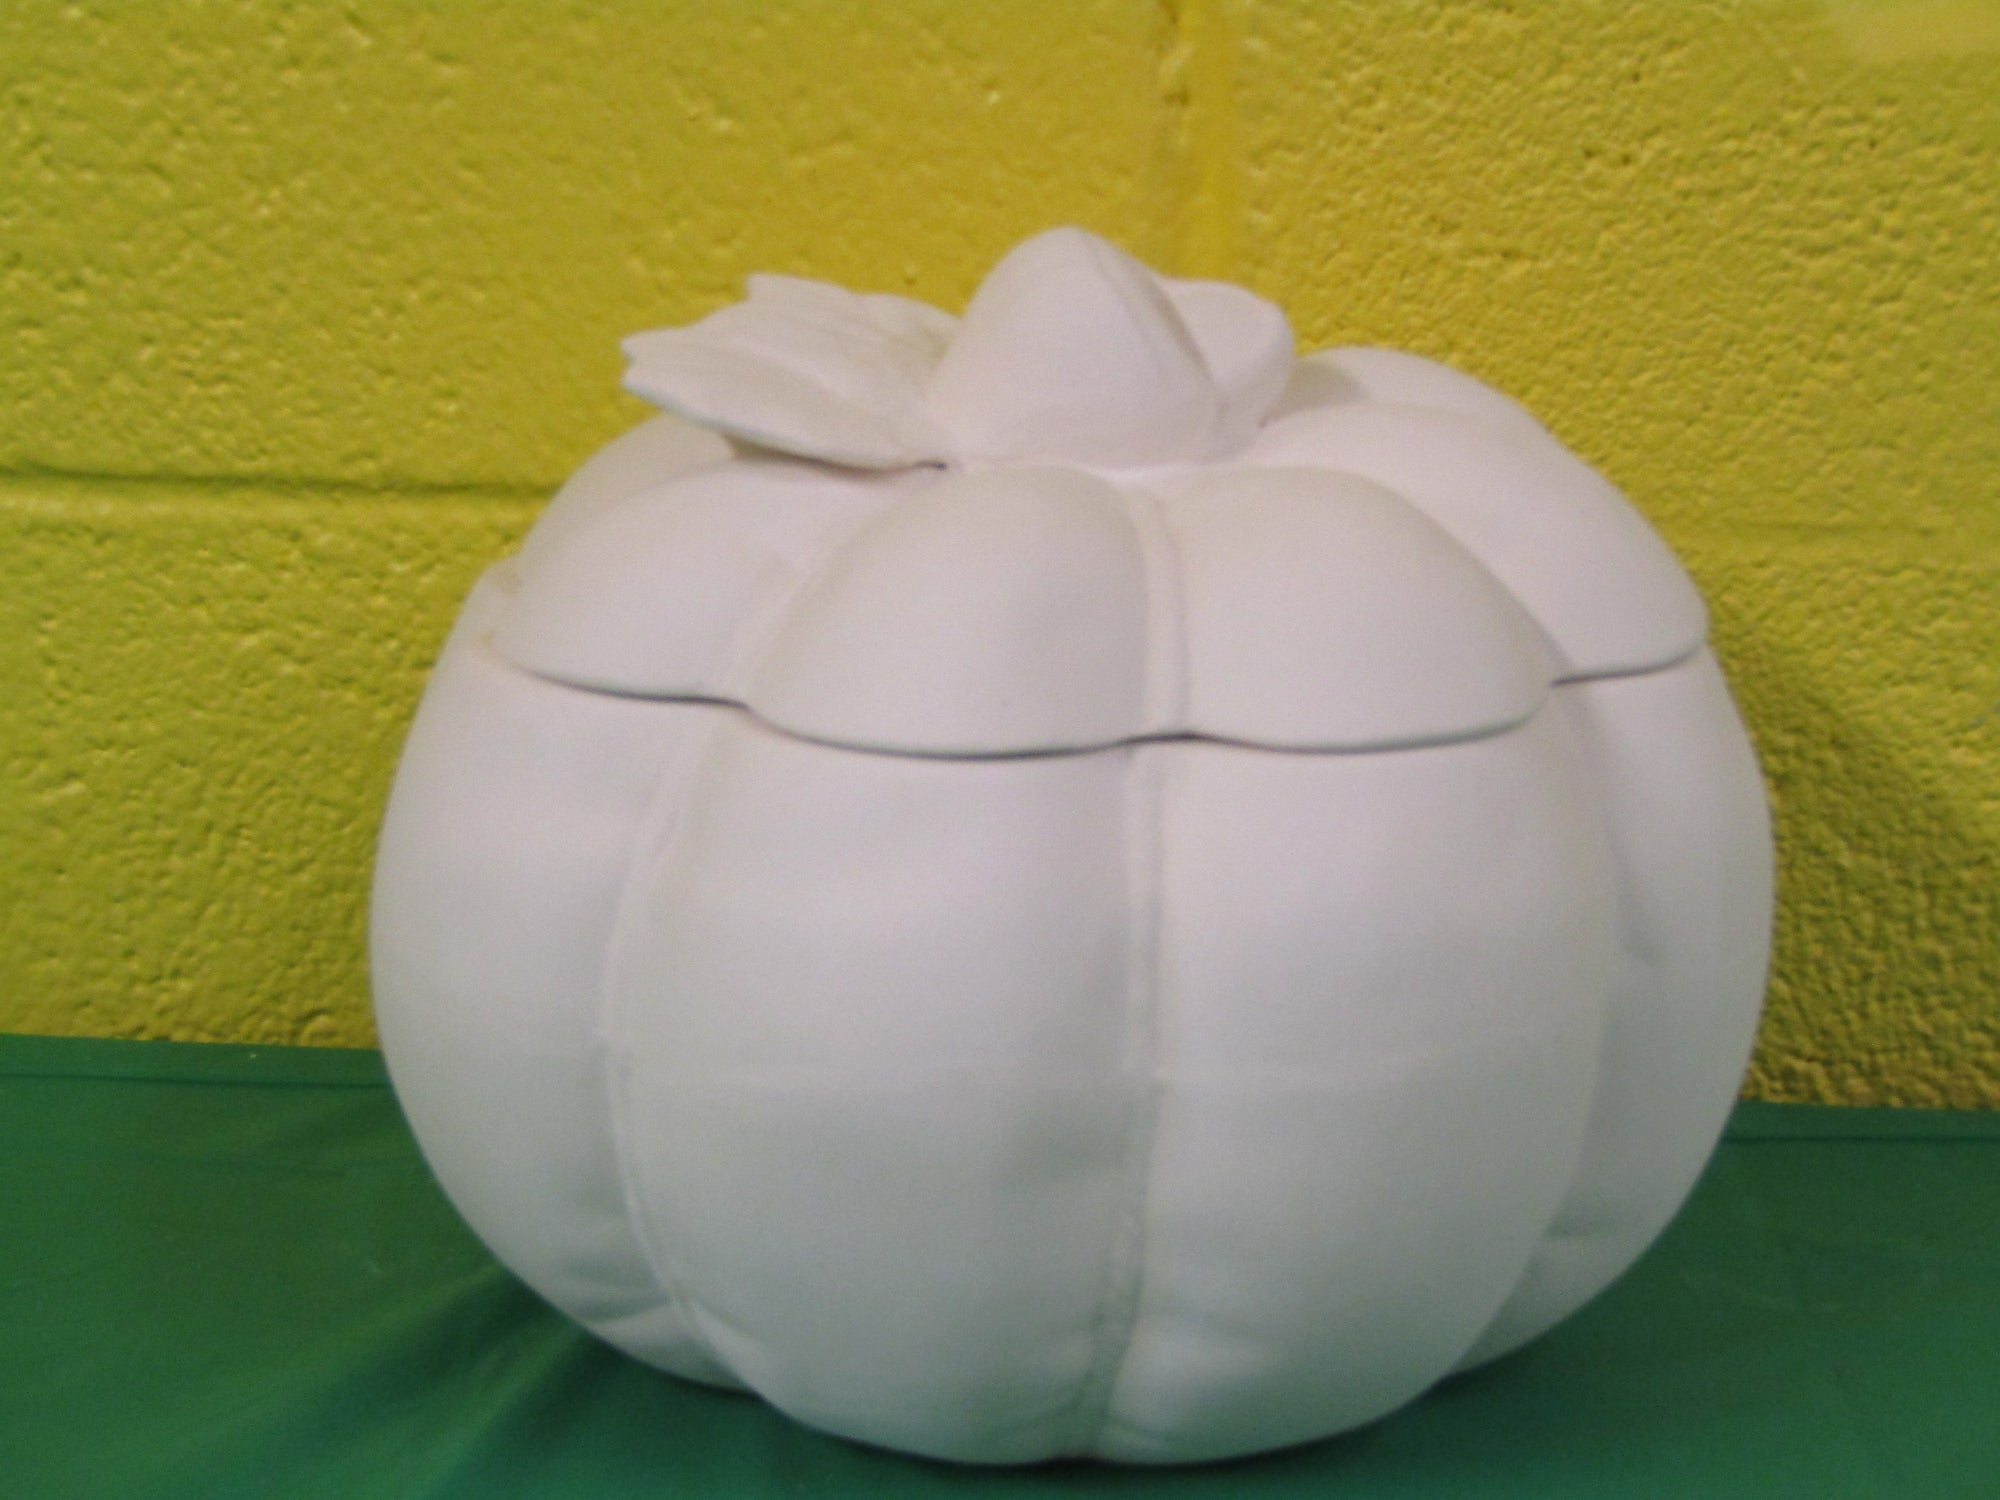 Pumpkin Container - 2 pc